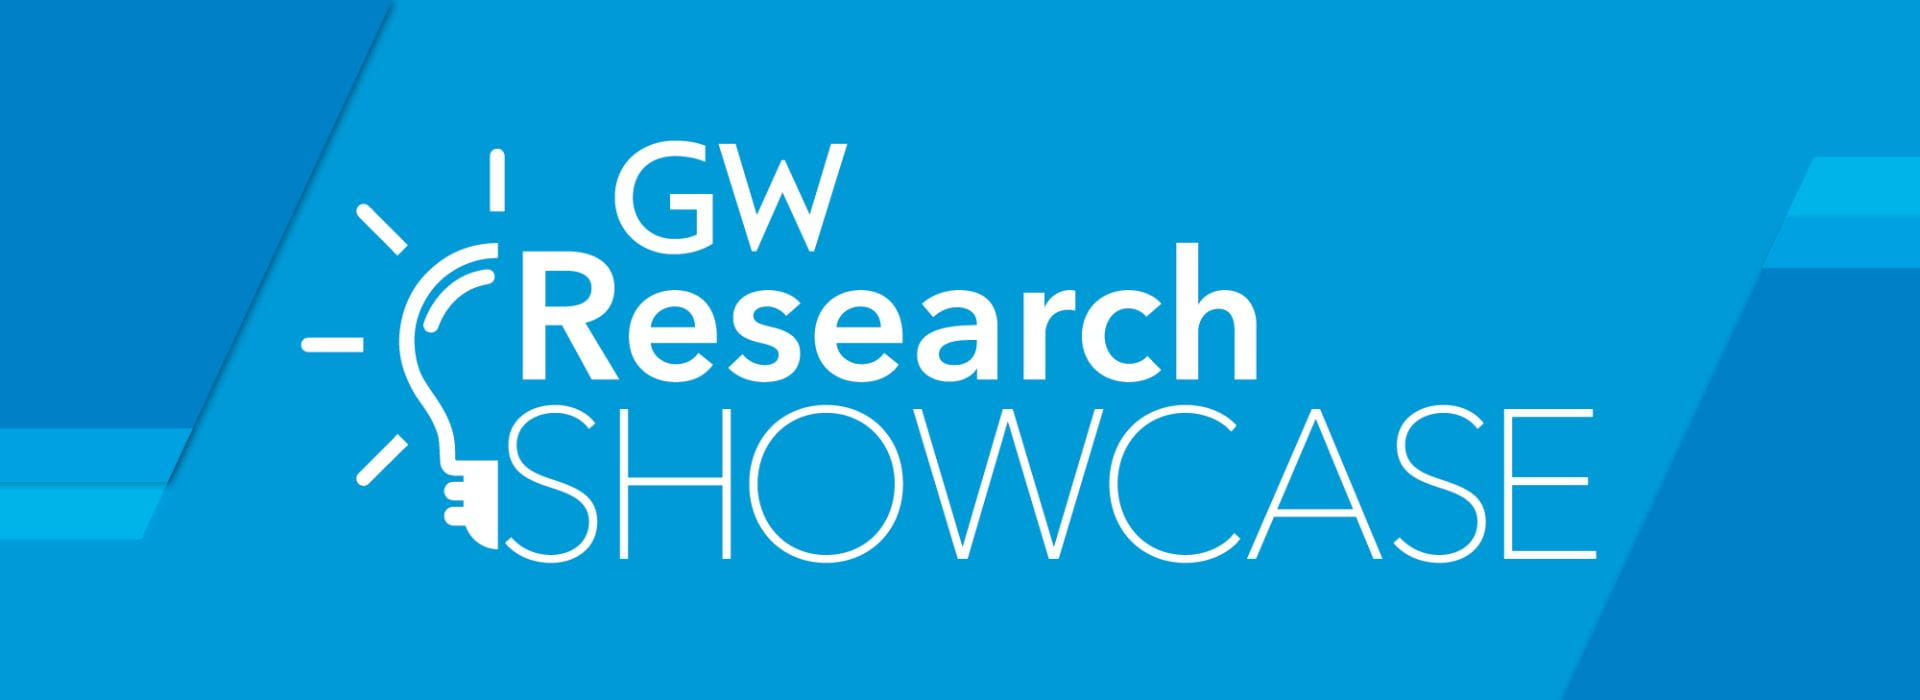 GW Research Showcase